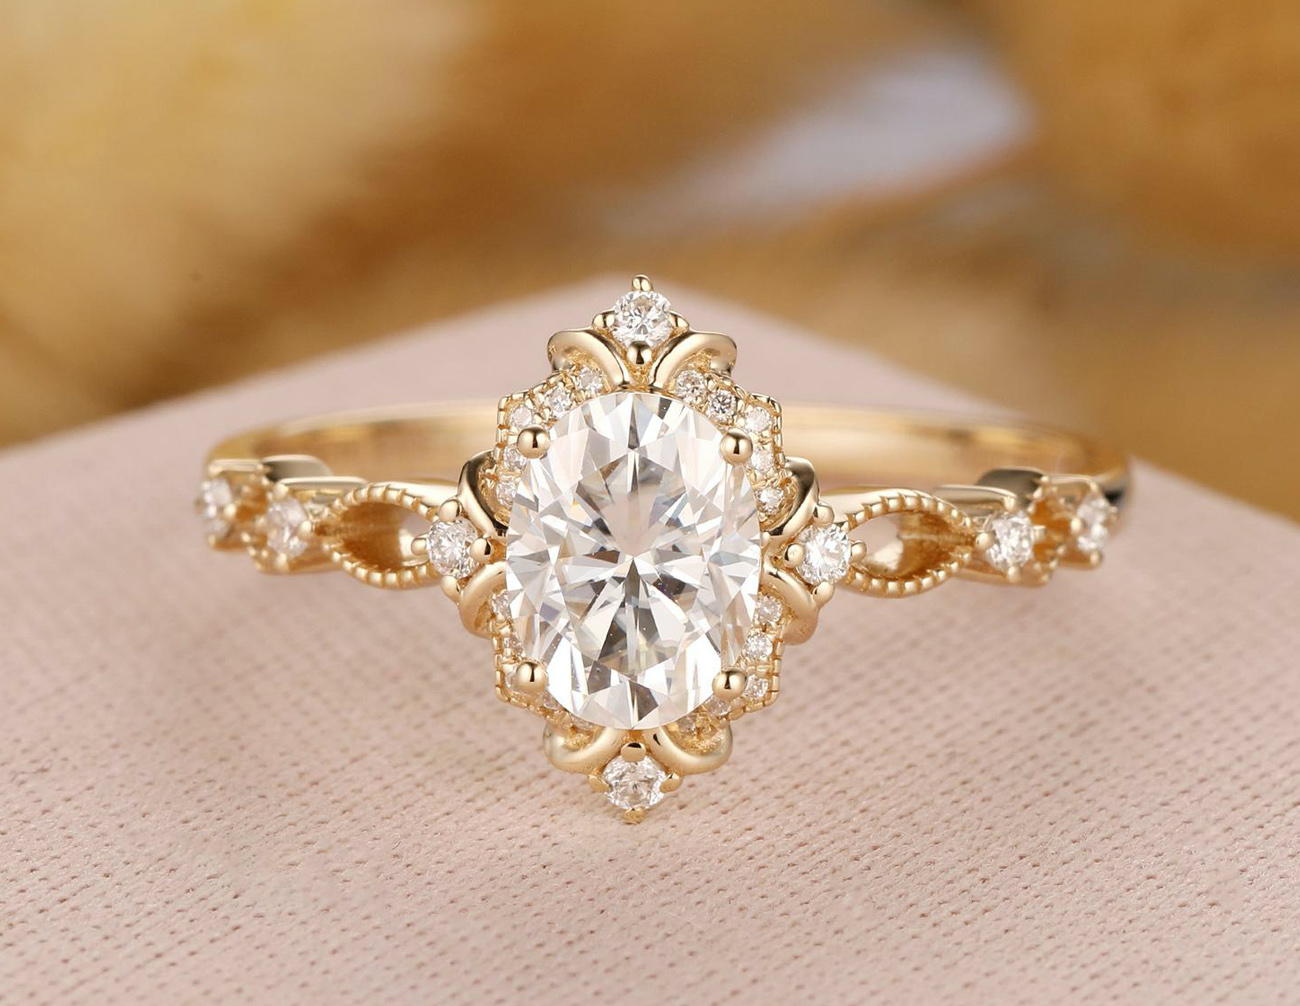 vintage engagement ring from Etsy